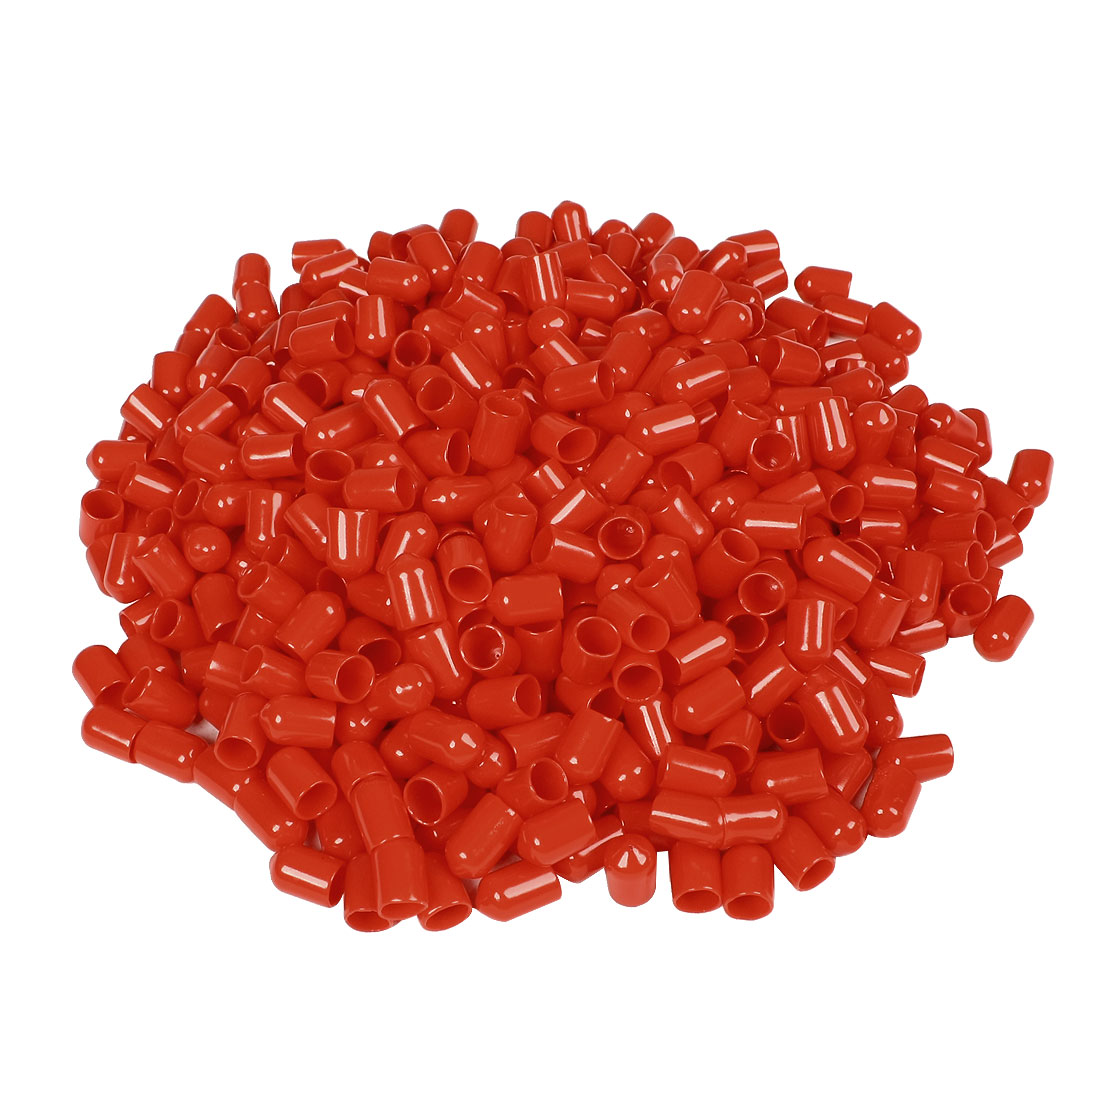 700 Pcs 14mm Height 8mm Inner Dia Round Tip Red PVC Insulated End Caps